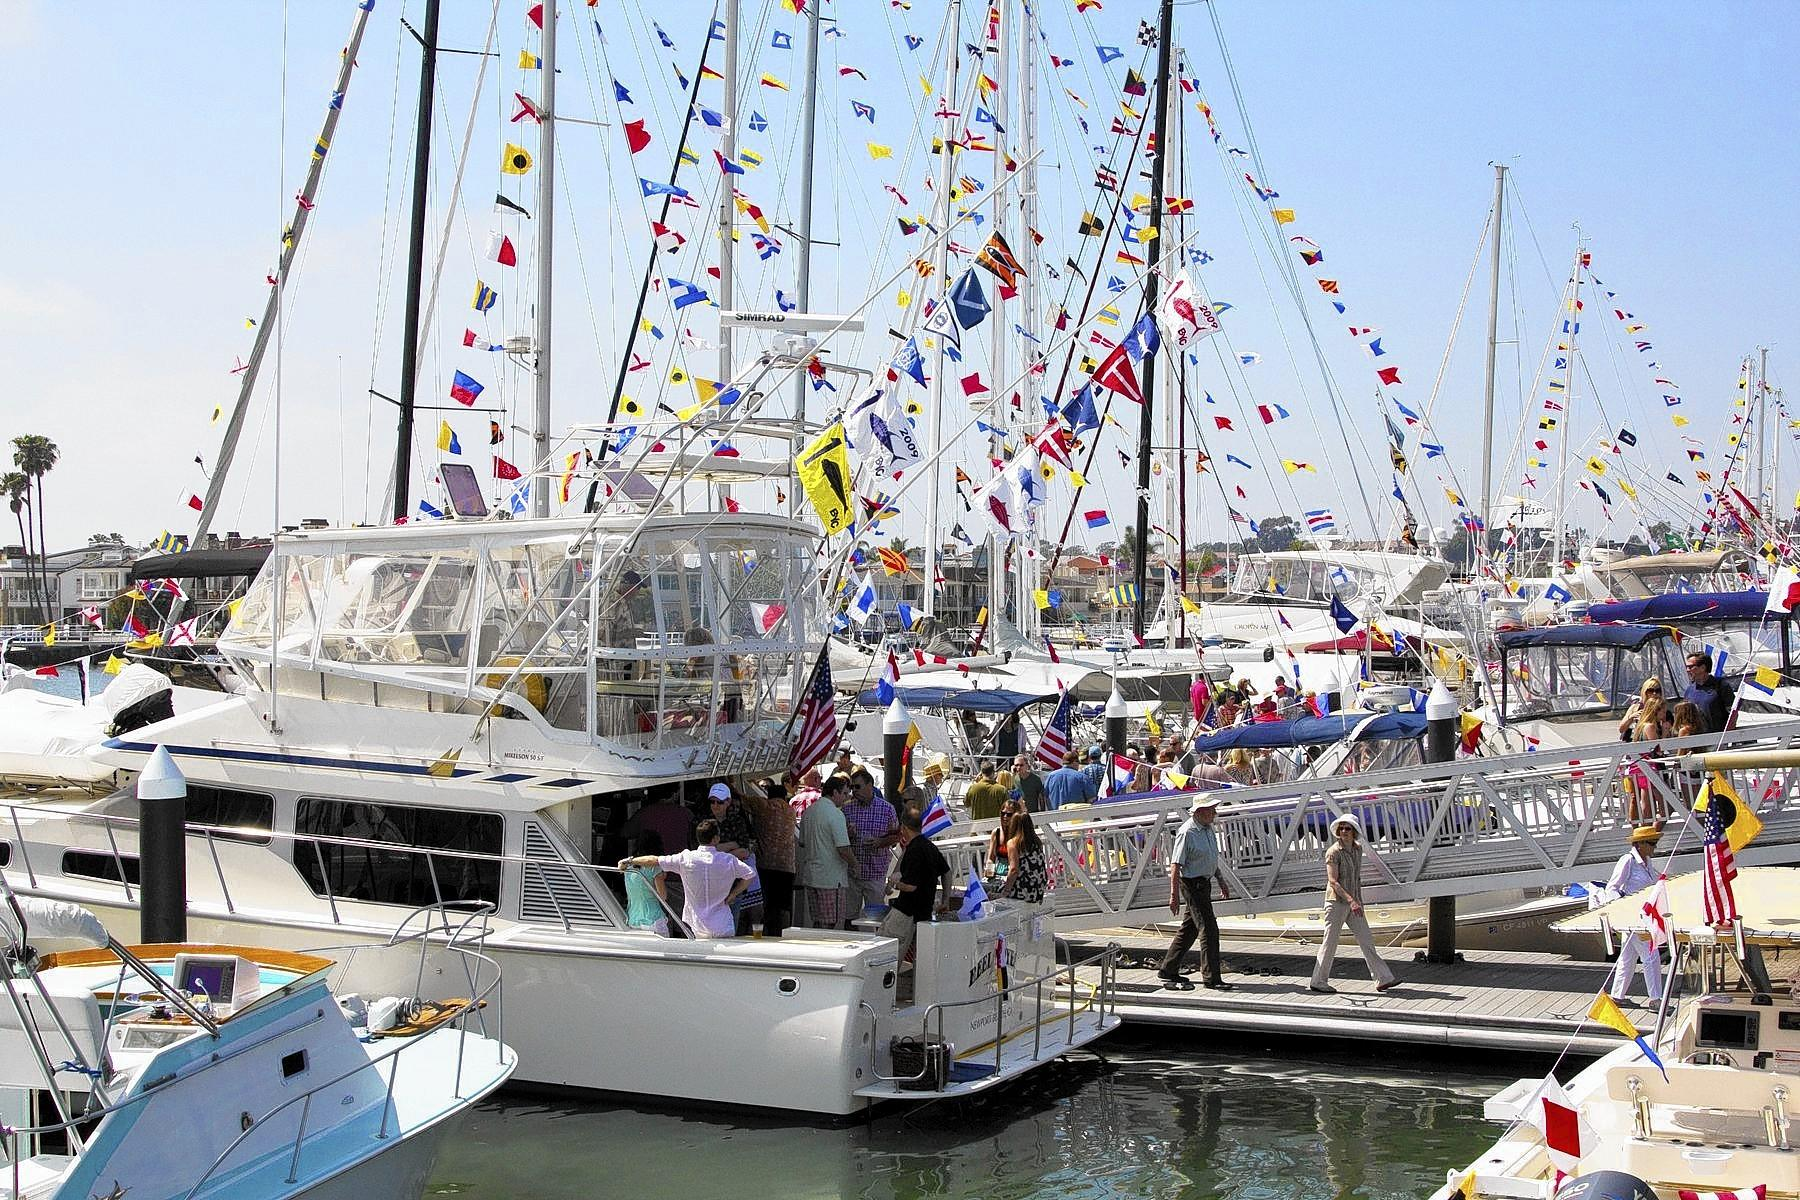 Opening day is a tradition for area yacht clubs like the Balboa Yacht Club, where many members put their boats on display for the ceremony each year.